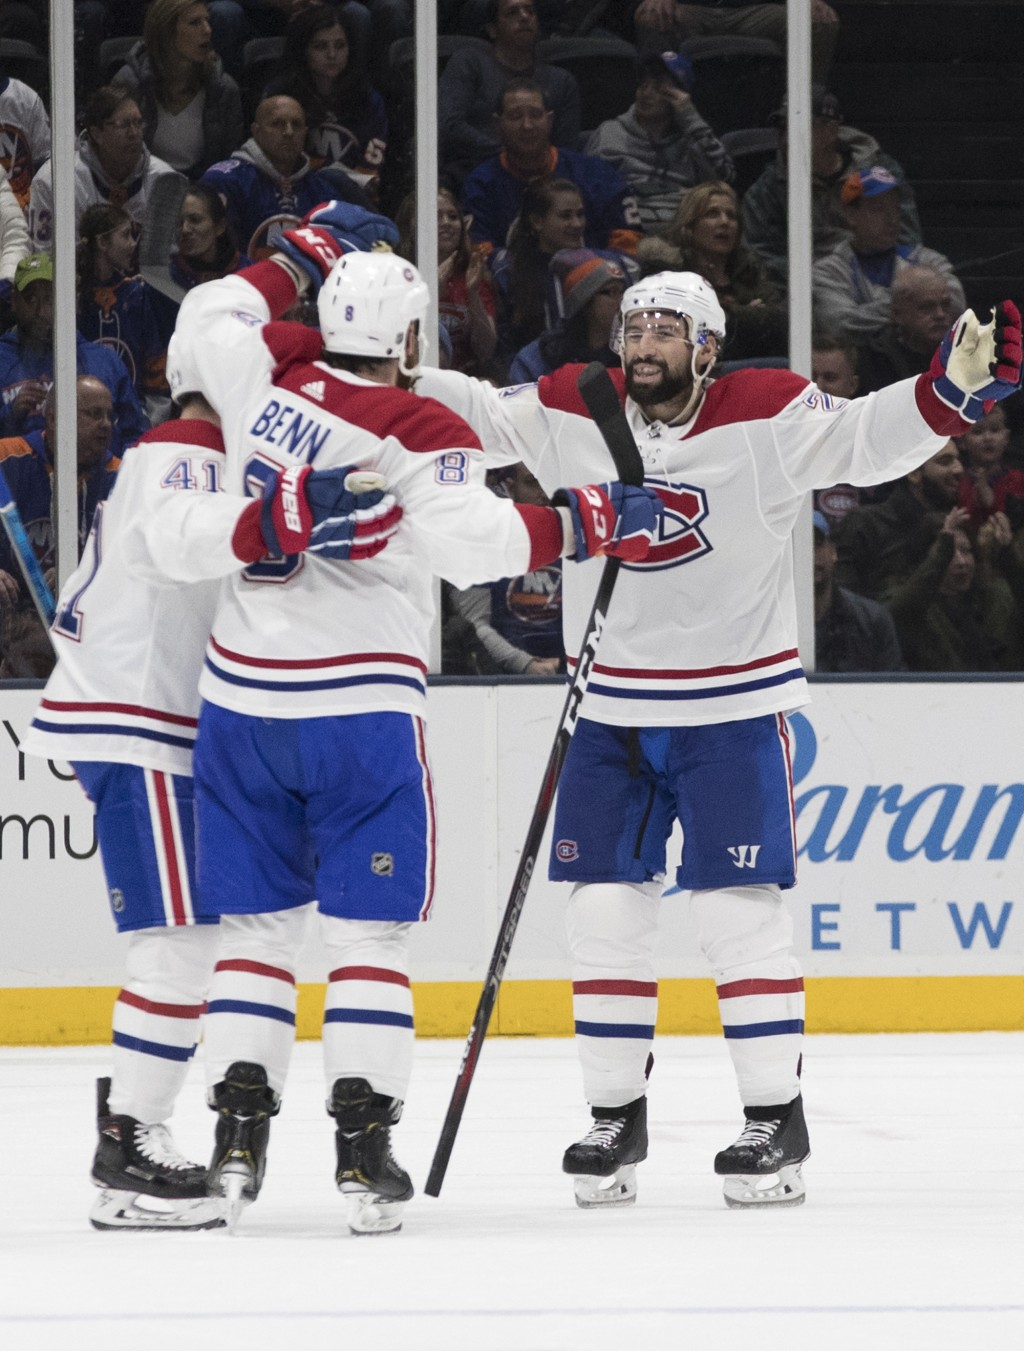 Montreal Canadiens defenseman Jordie Benn, center, celebrates after scoring a goal during the second period of an NHL hockey game against the New York